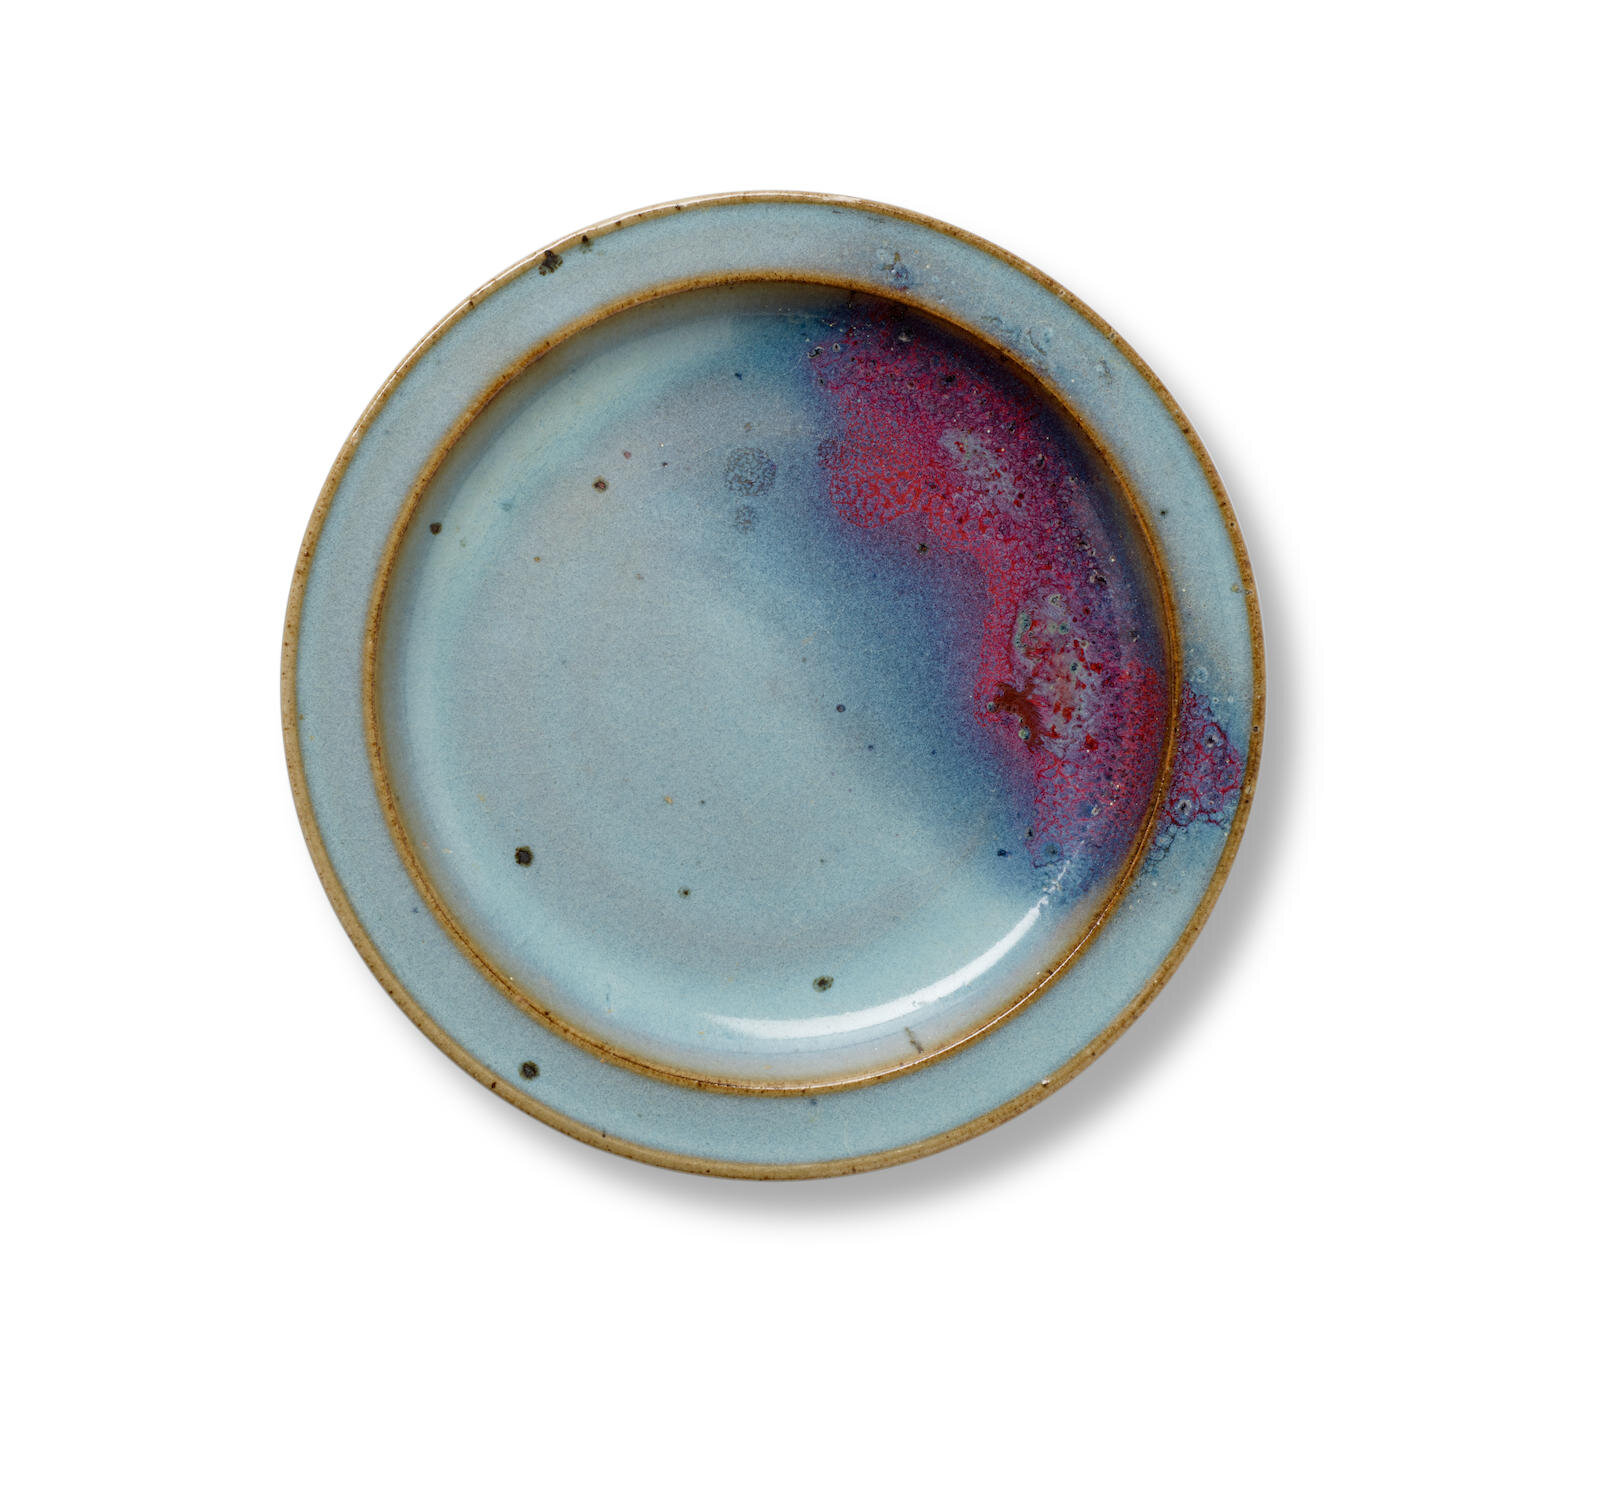 A fine Junyao purple-splashed dish, Jin-Yuan dynasty (1115-1368)